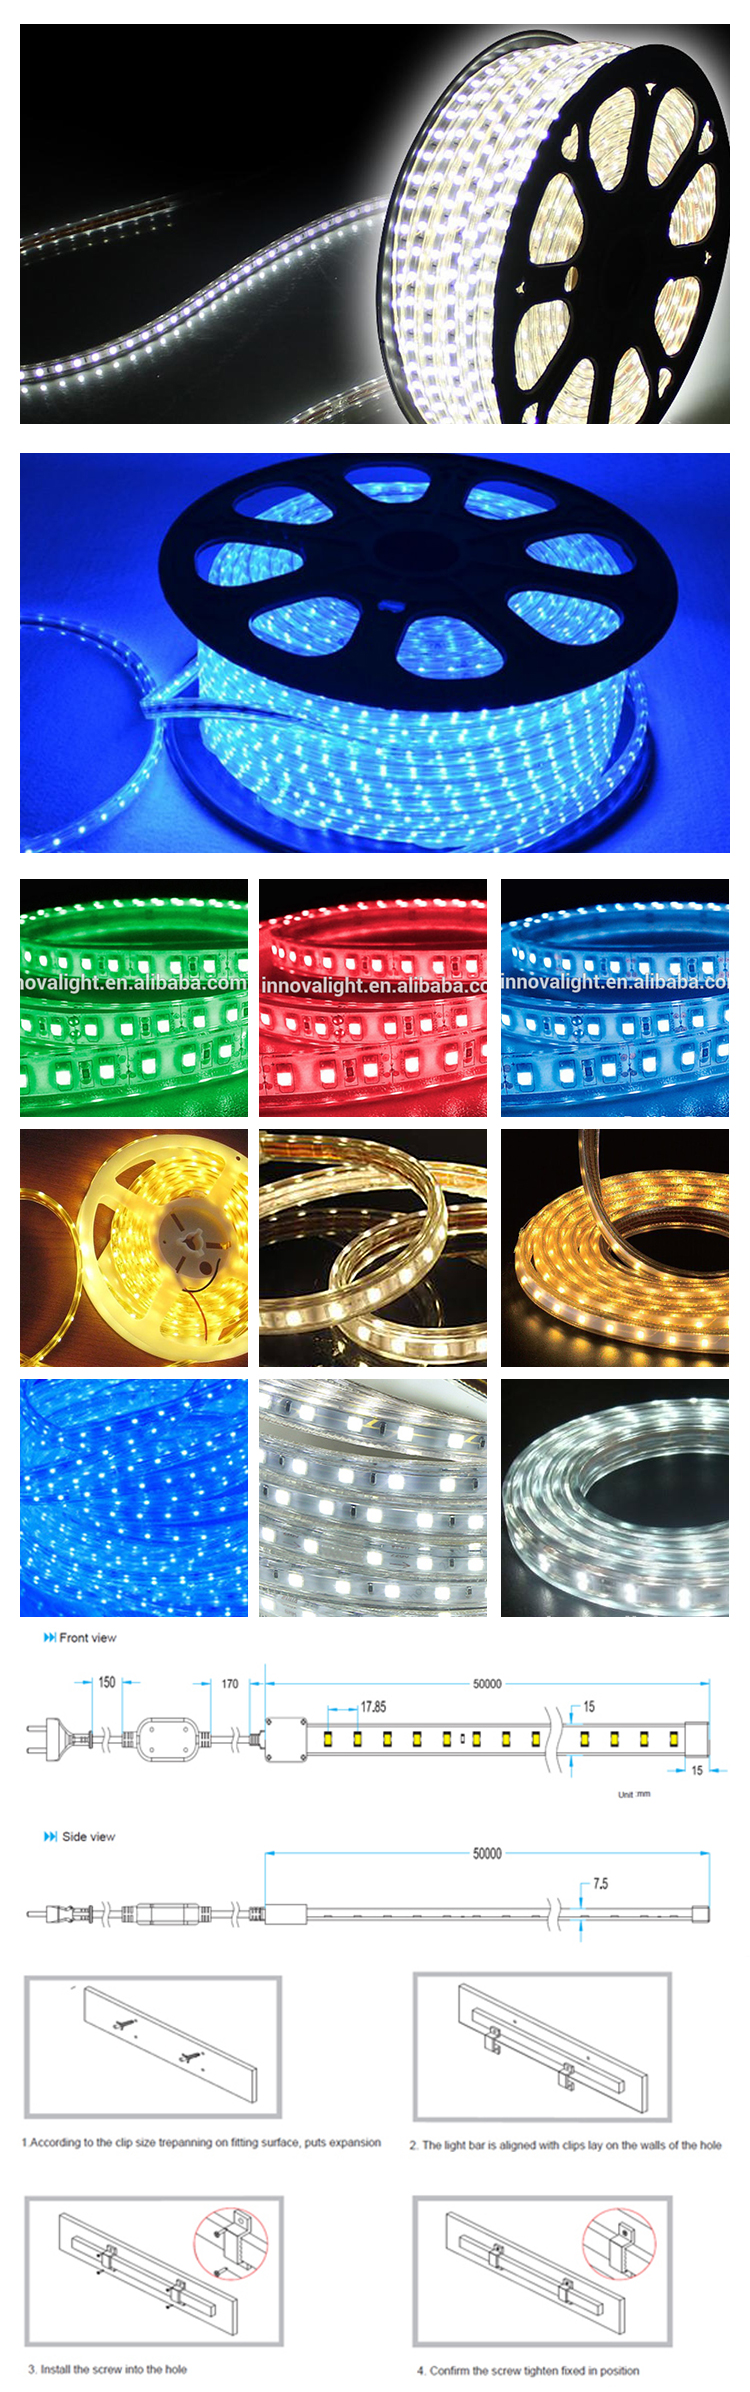 INNOVALIGTH LED STRIP 5050 RGB FLEXIBLE LED STRIP LIGHTS 220V